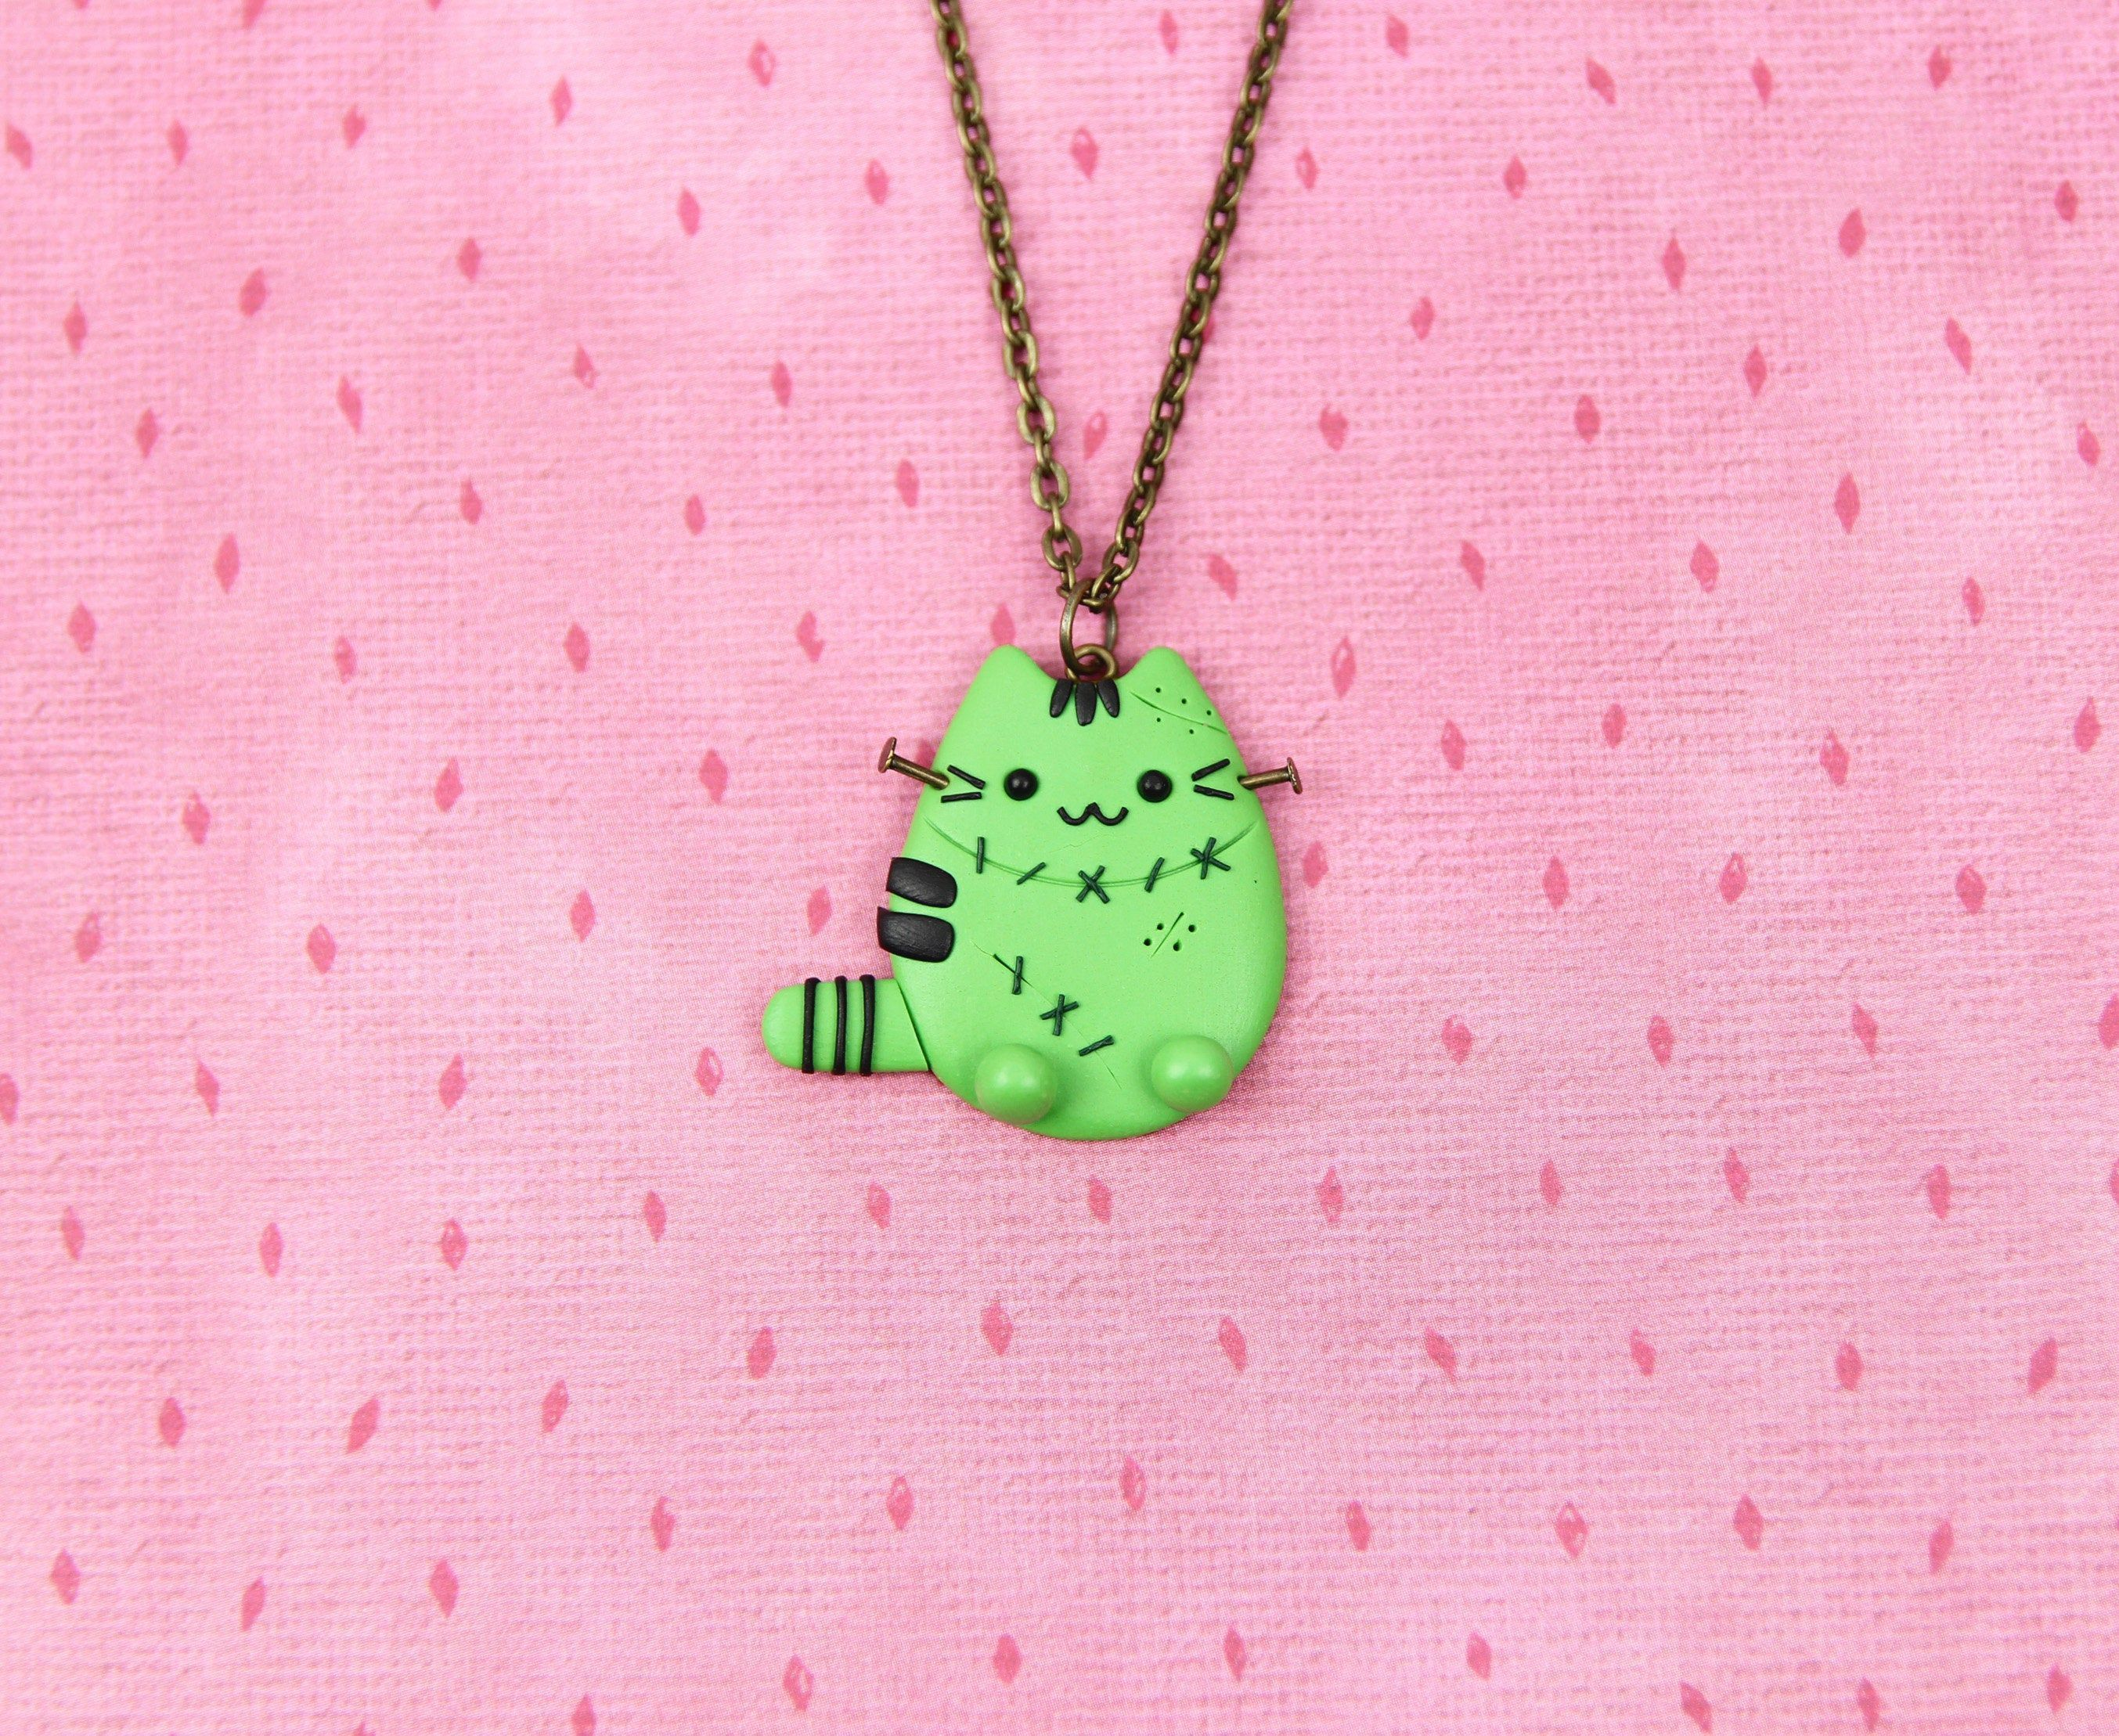 Cat Frankenstein Necklace, Halloween Party Gift, Creepy Pusheen Necklace, Green Monster Jewelry, Kitty Zombie Apocalypse, Stocking Stuffers #zombieapocalypseparty Cat Frankenstein Necklace, Halloween Party Gift, Creepy Pusheen Necklace, Green Monster Jewelry, Kitty Zombie Apocalypse, Stocking Stuffers #zombieapocalypseparty Cat Frankenstein Necklace, Halloween Party Gift, Creepy Pusheen Necklace, Green Monster Jewelry, Kitty Zombie Apocalypse, Stocking Stuffers #zombieapocalypseparty Cat Franken #zombieapocalypseparty